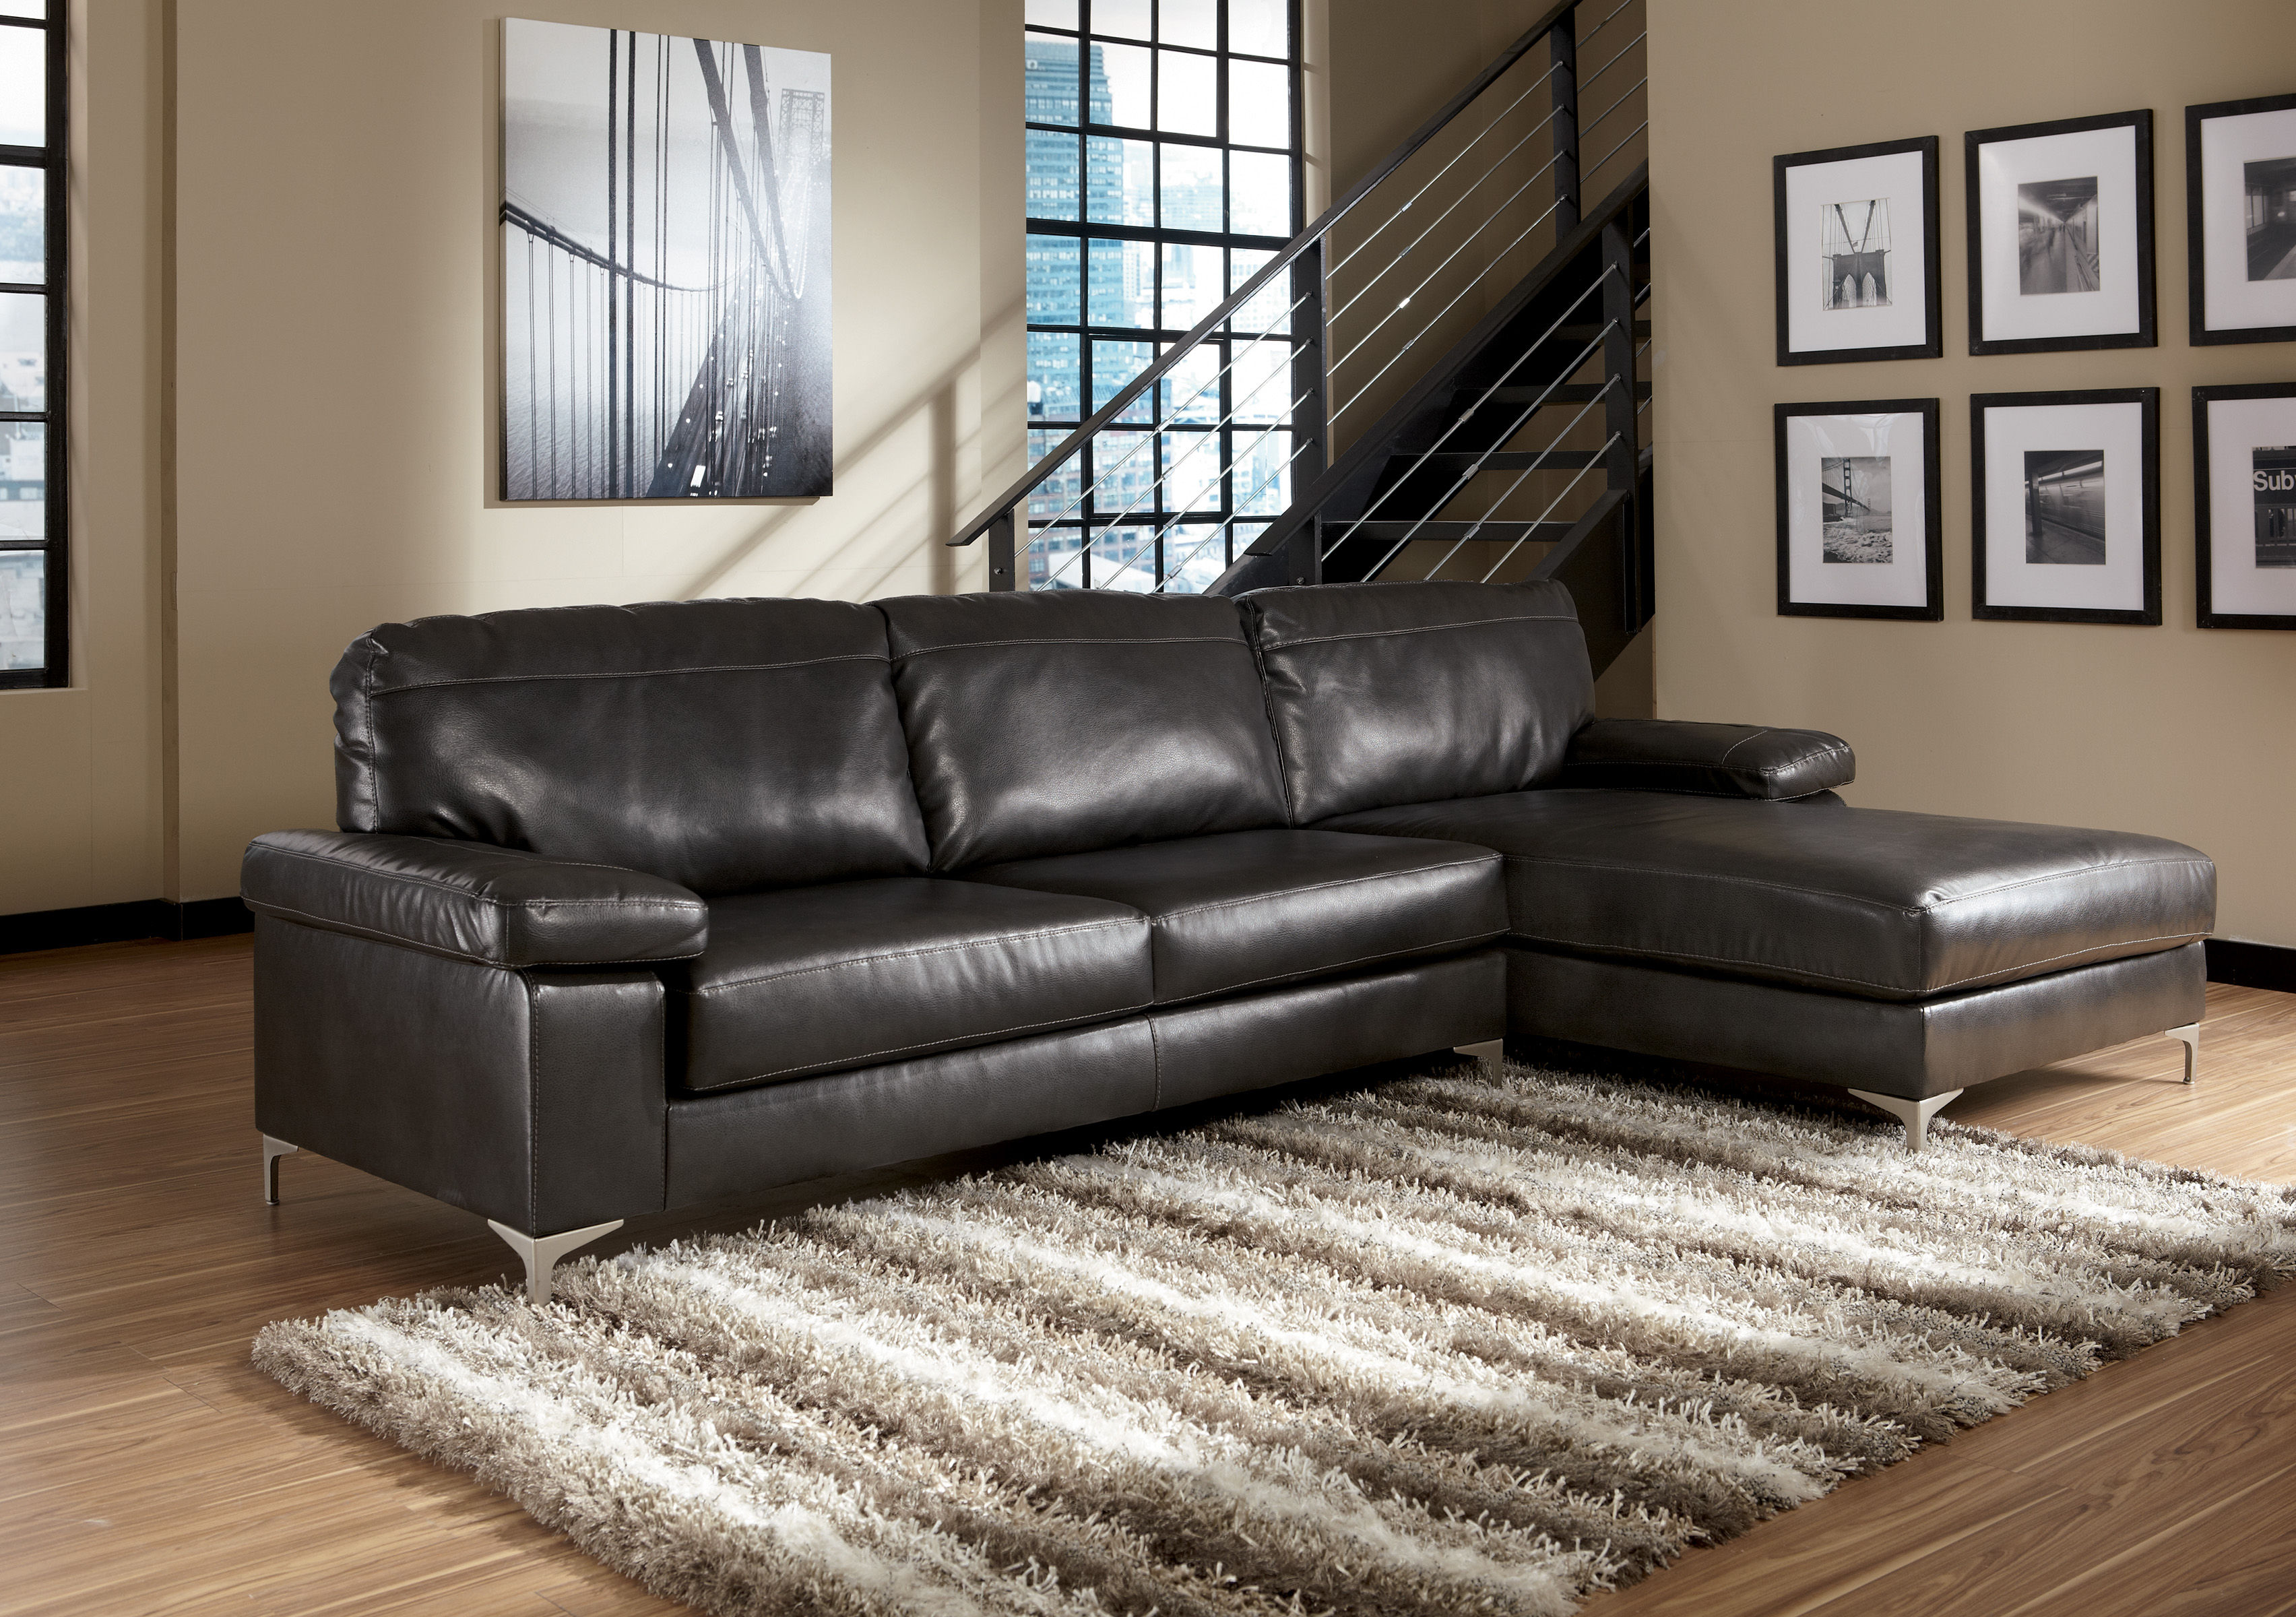 Elgan durablend charcoal sectional right side chaise for Ashley durablend chaise